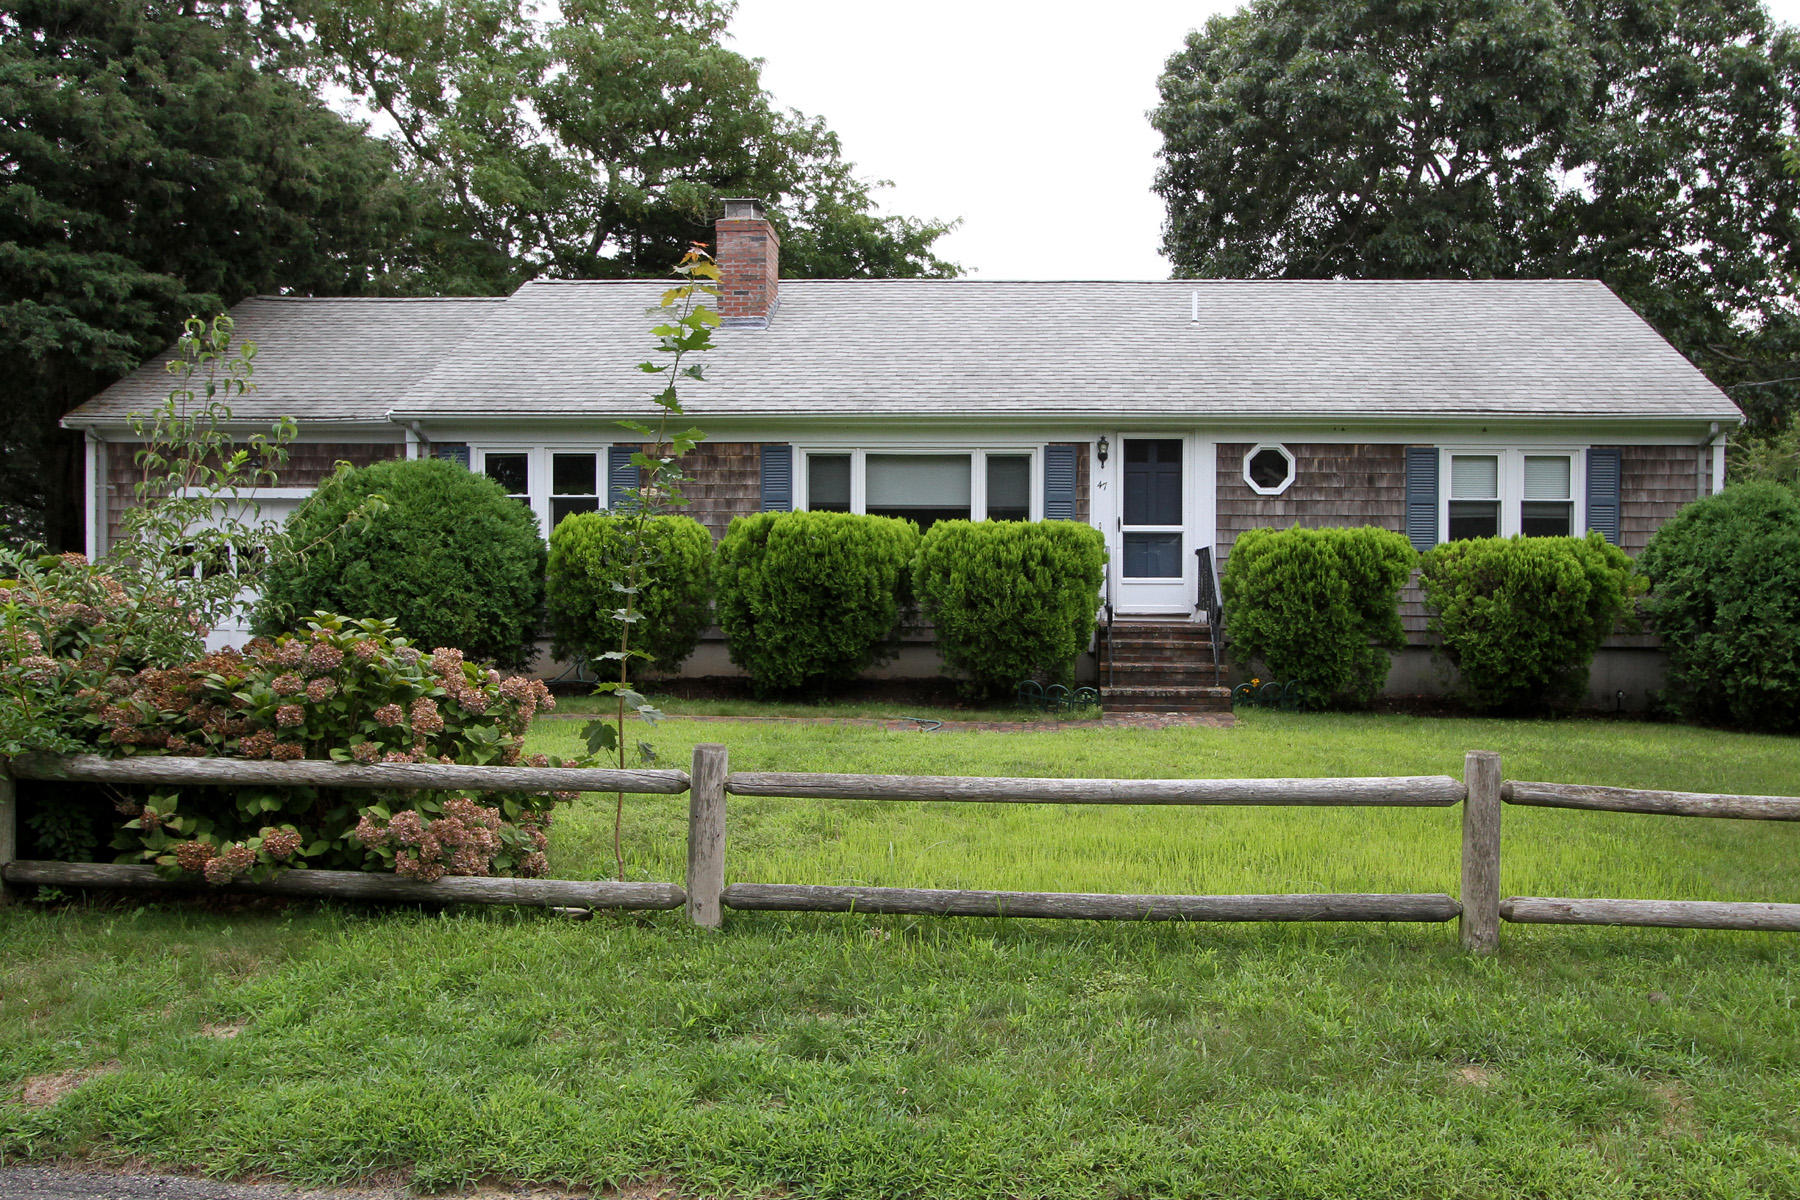 House for Sale at 47 Bristol Street, Dennis, MA 47 Bristol Street Dennis, Massachusetts 02638 United States